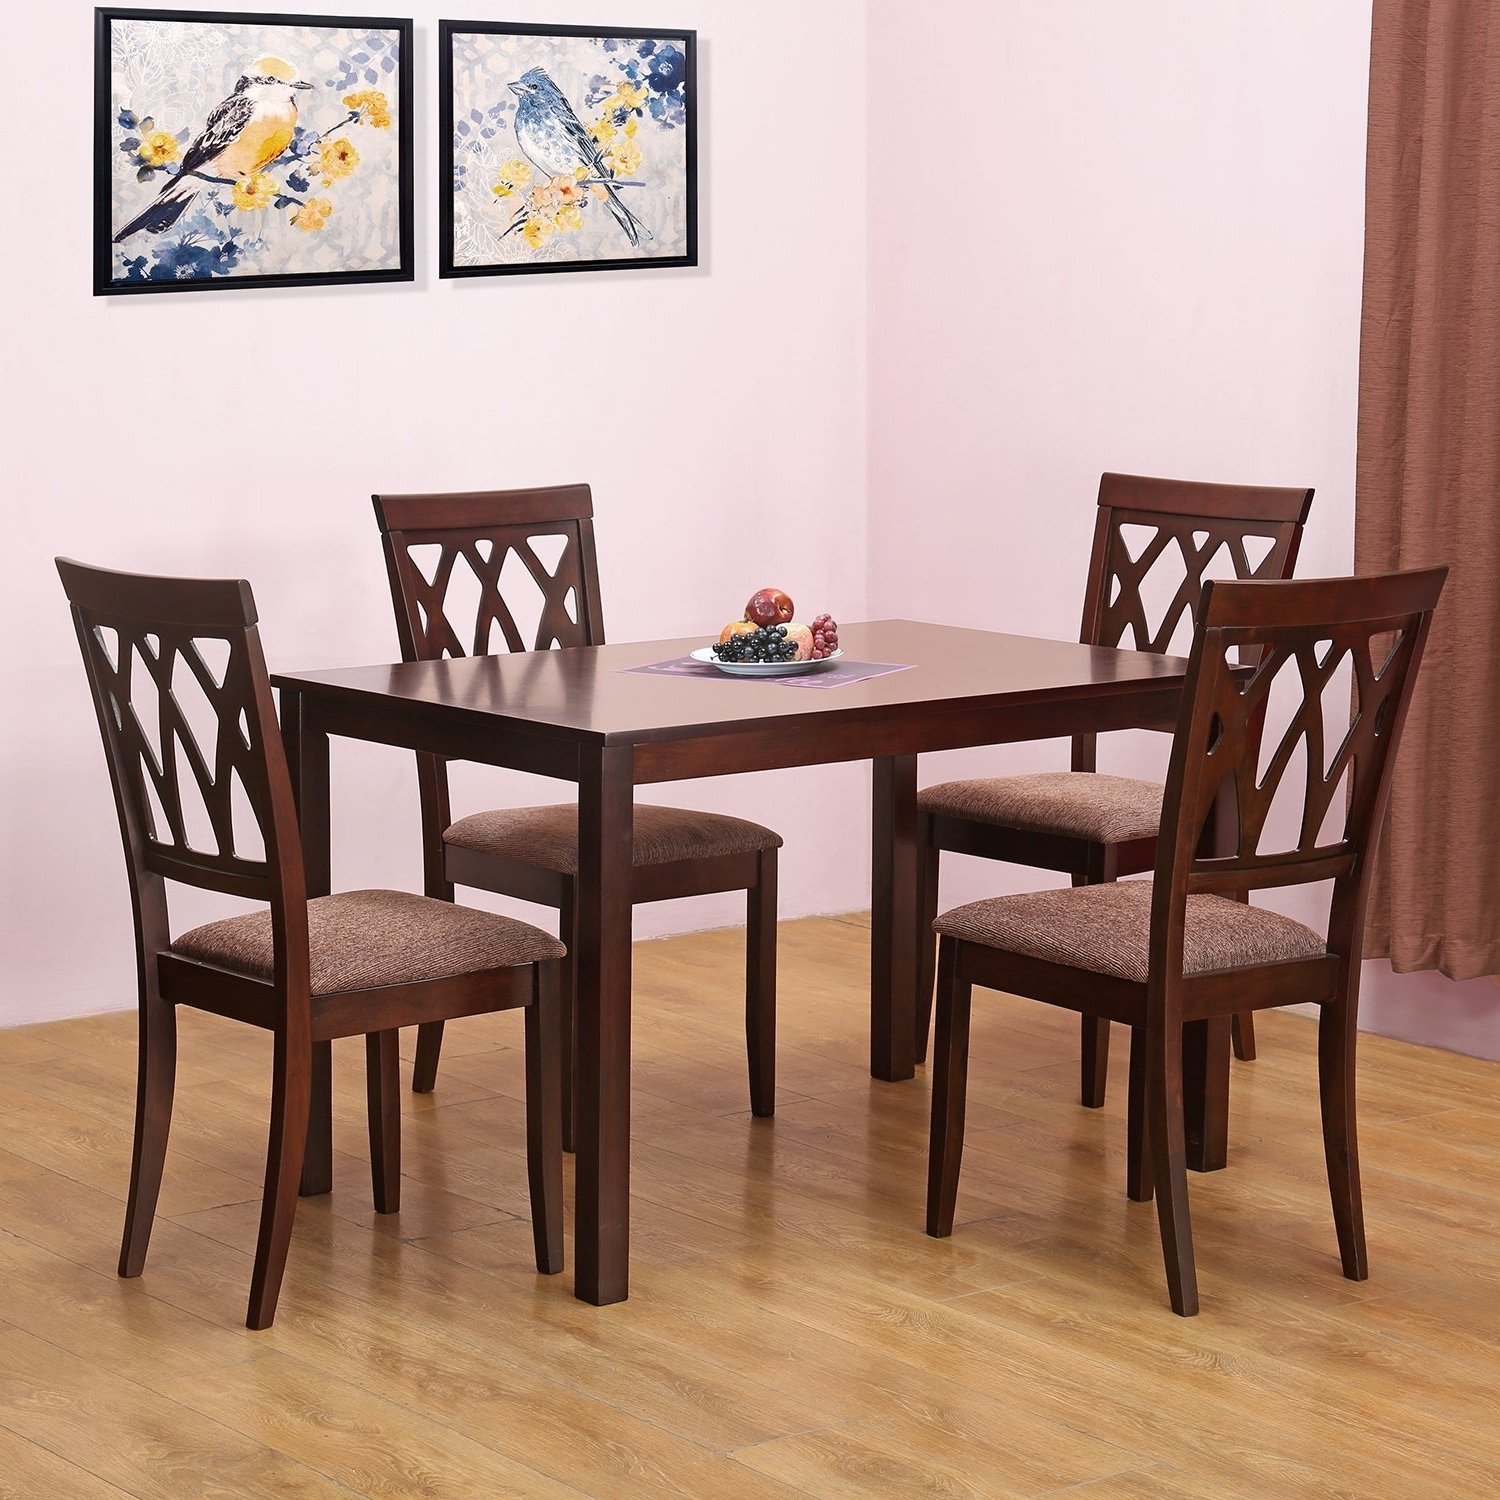 Unusual Dining Tables For Sale Throughout Most Recently Released Dining Room Table Prices Cheap Table And Chair # (View 21 of 25)